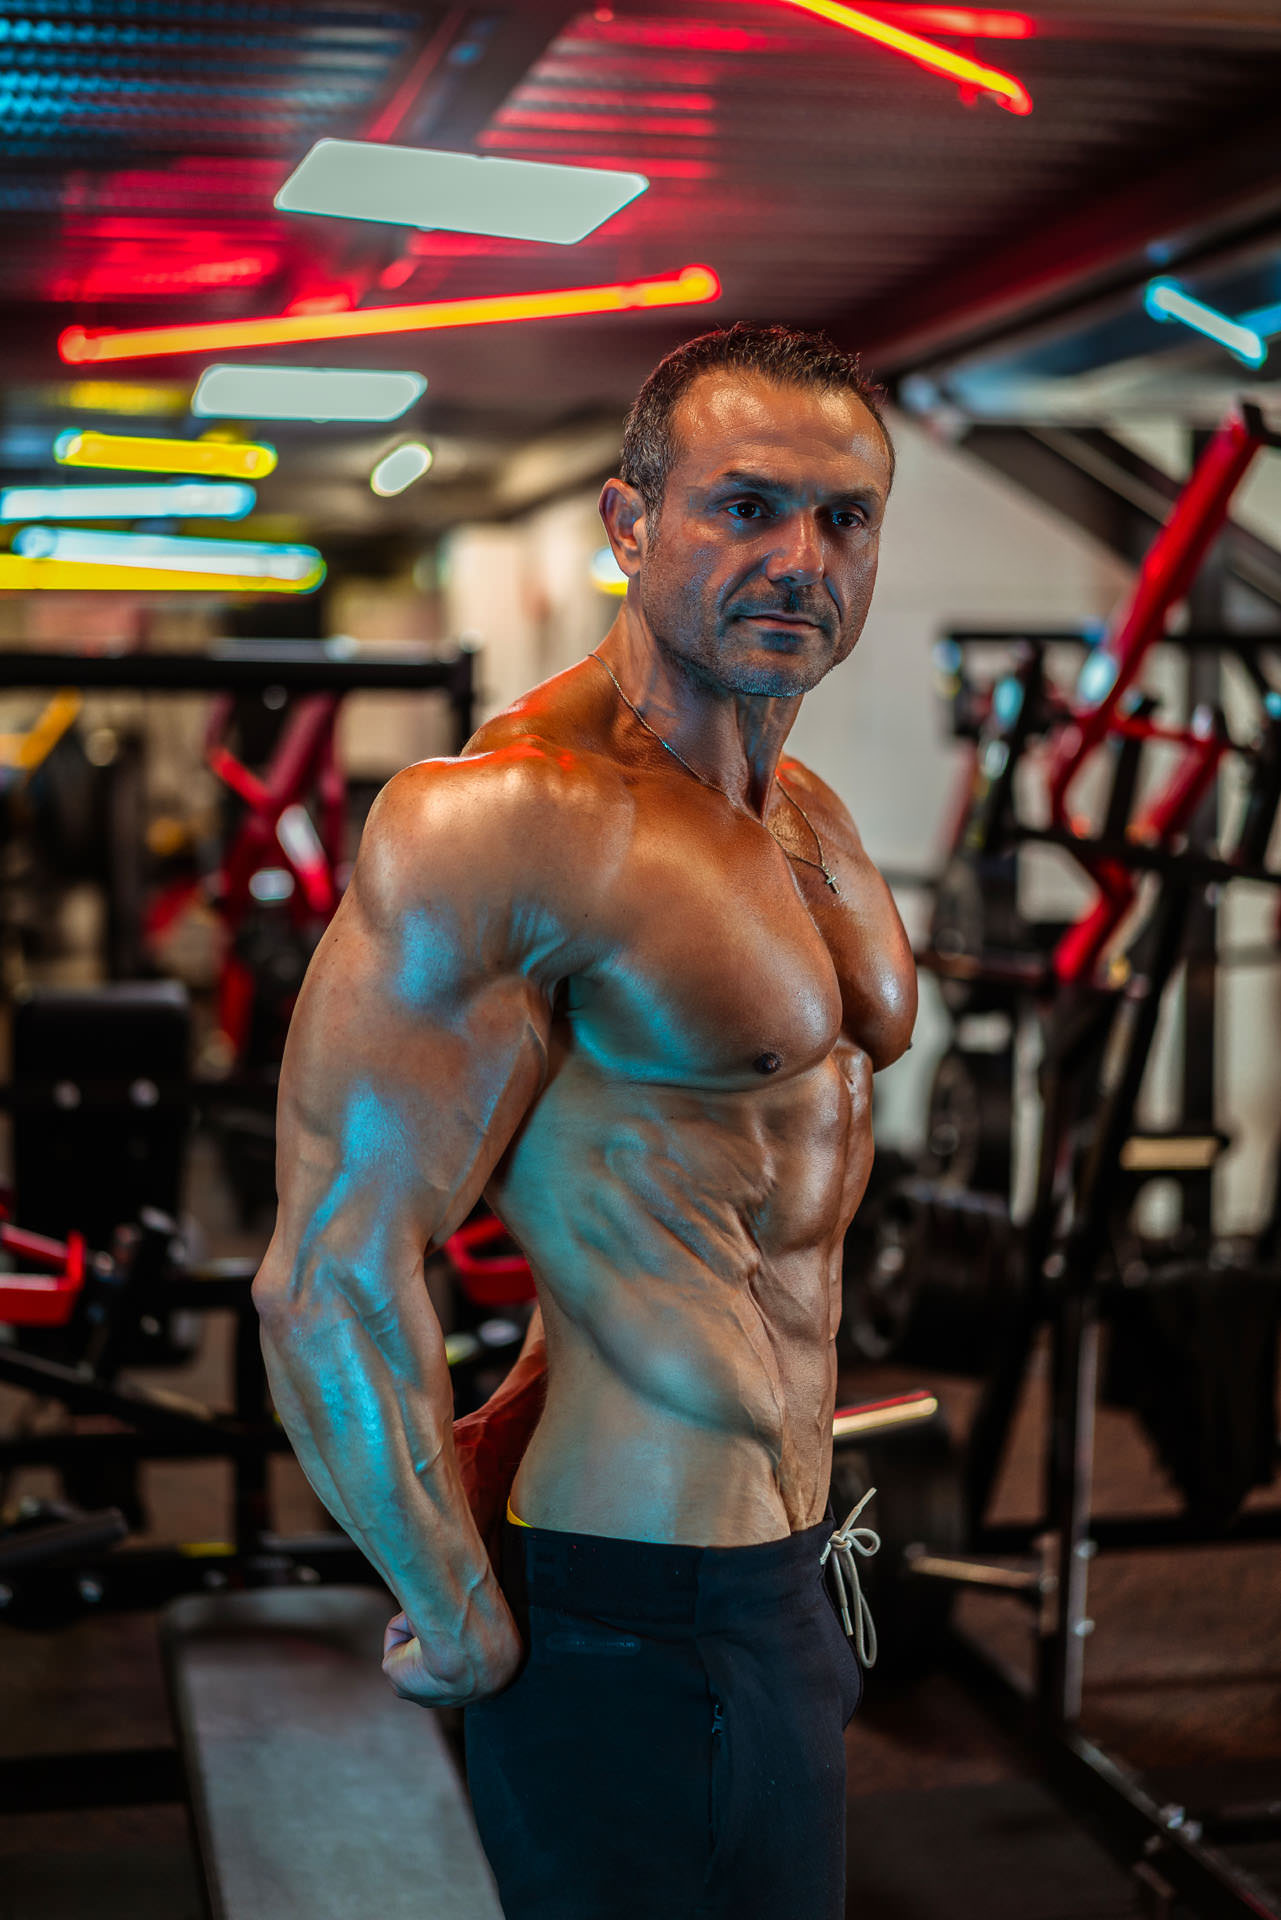 2020-03-15 - Enzo - Muscle Factory - 01538 - 1920px